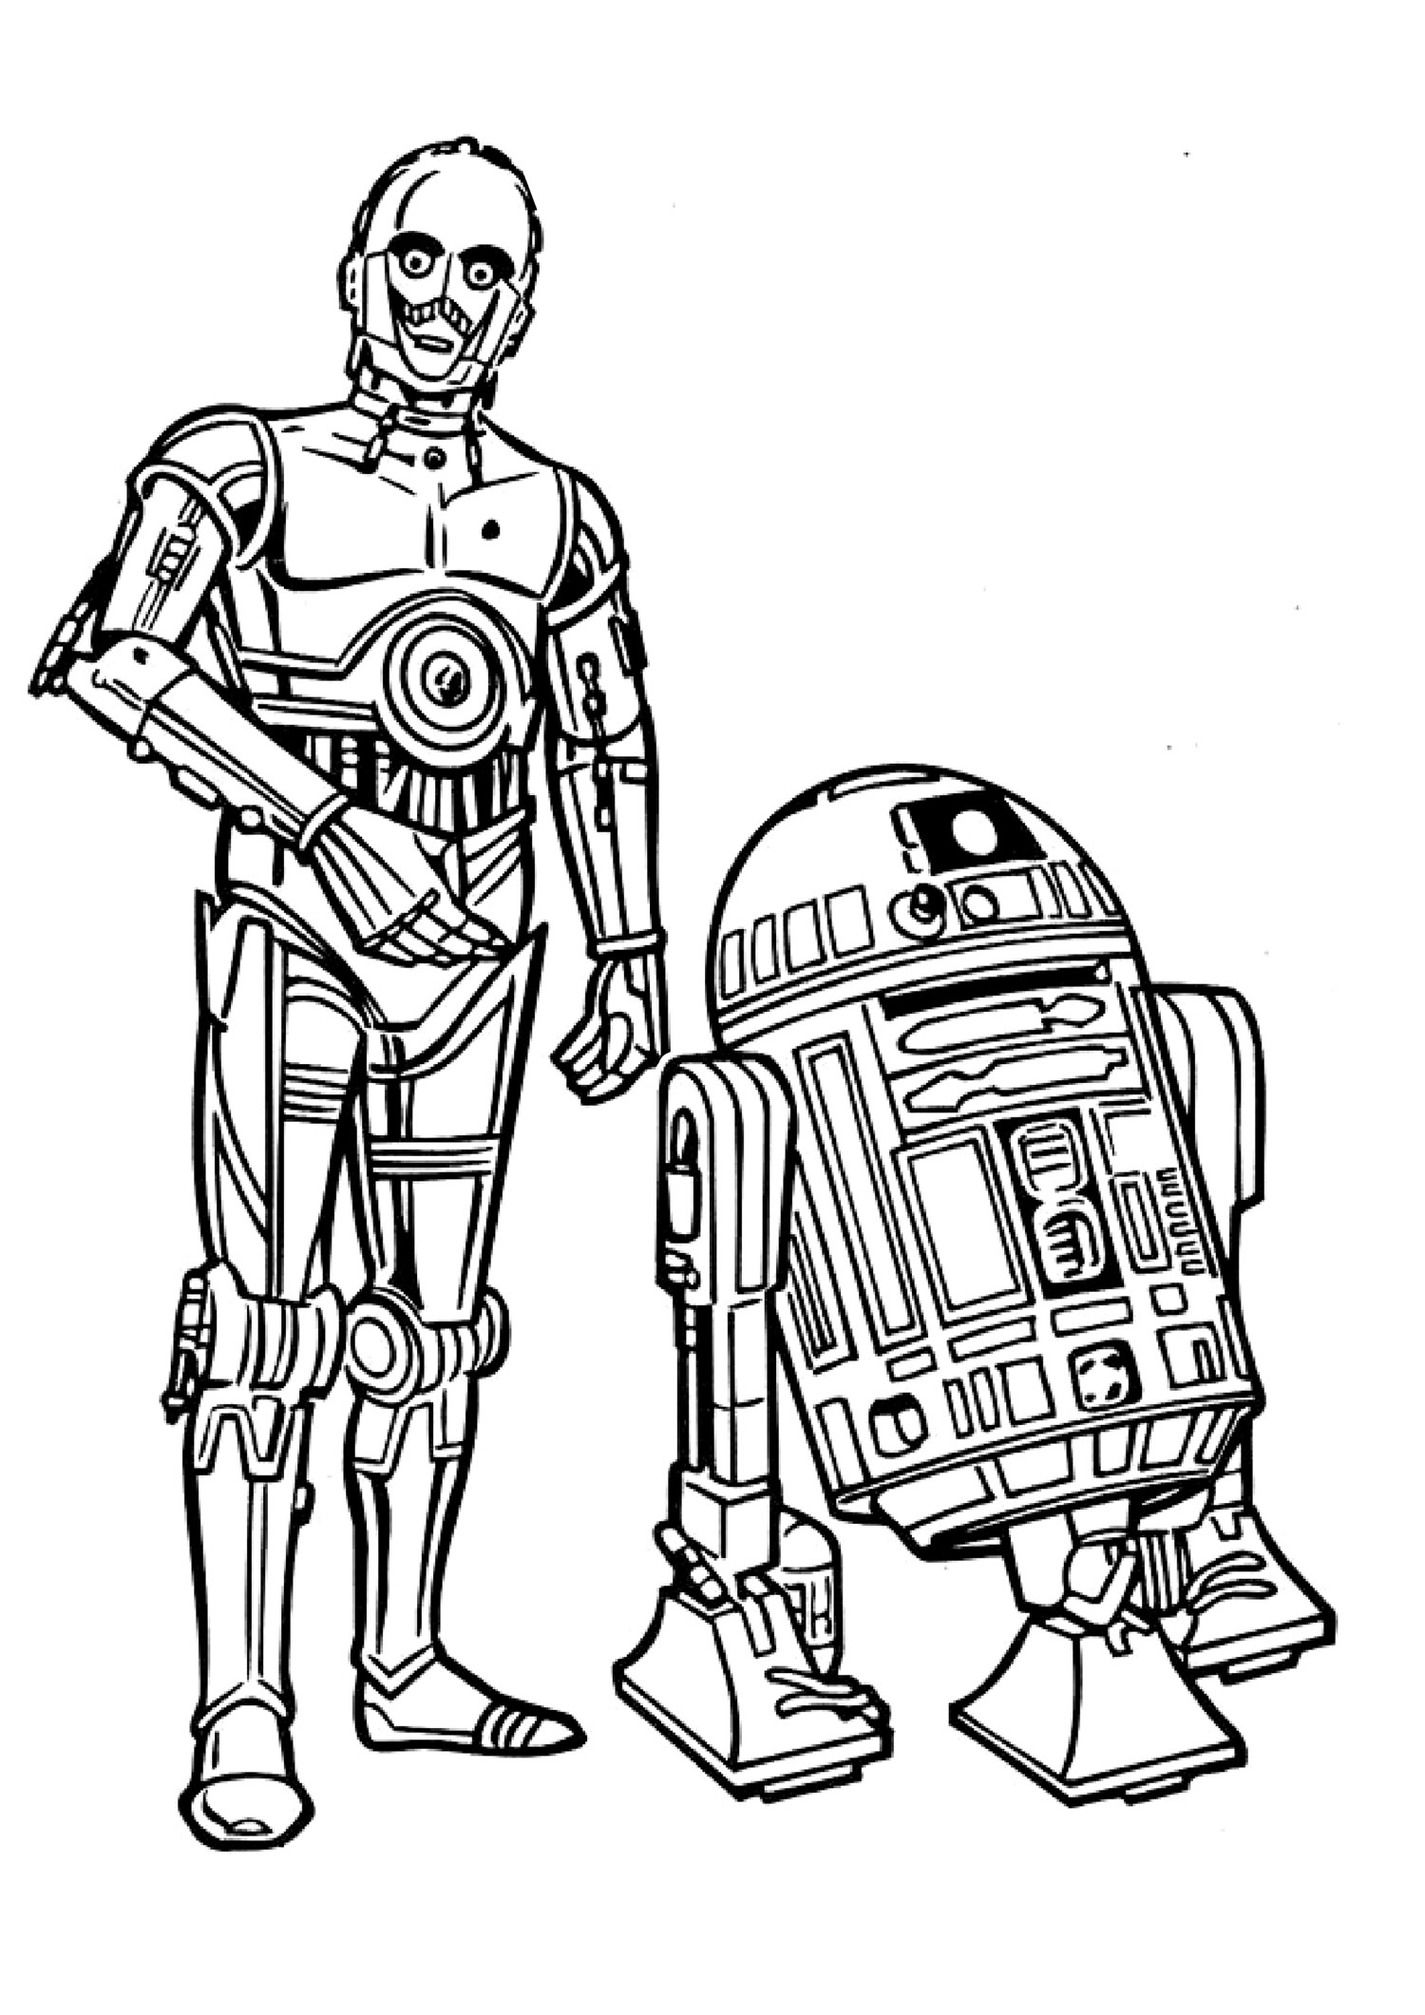 star wars droid coloring pages star wars line art clipart free to use clip art resource coloring star wars pages droid